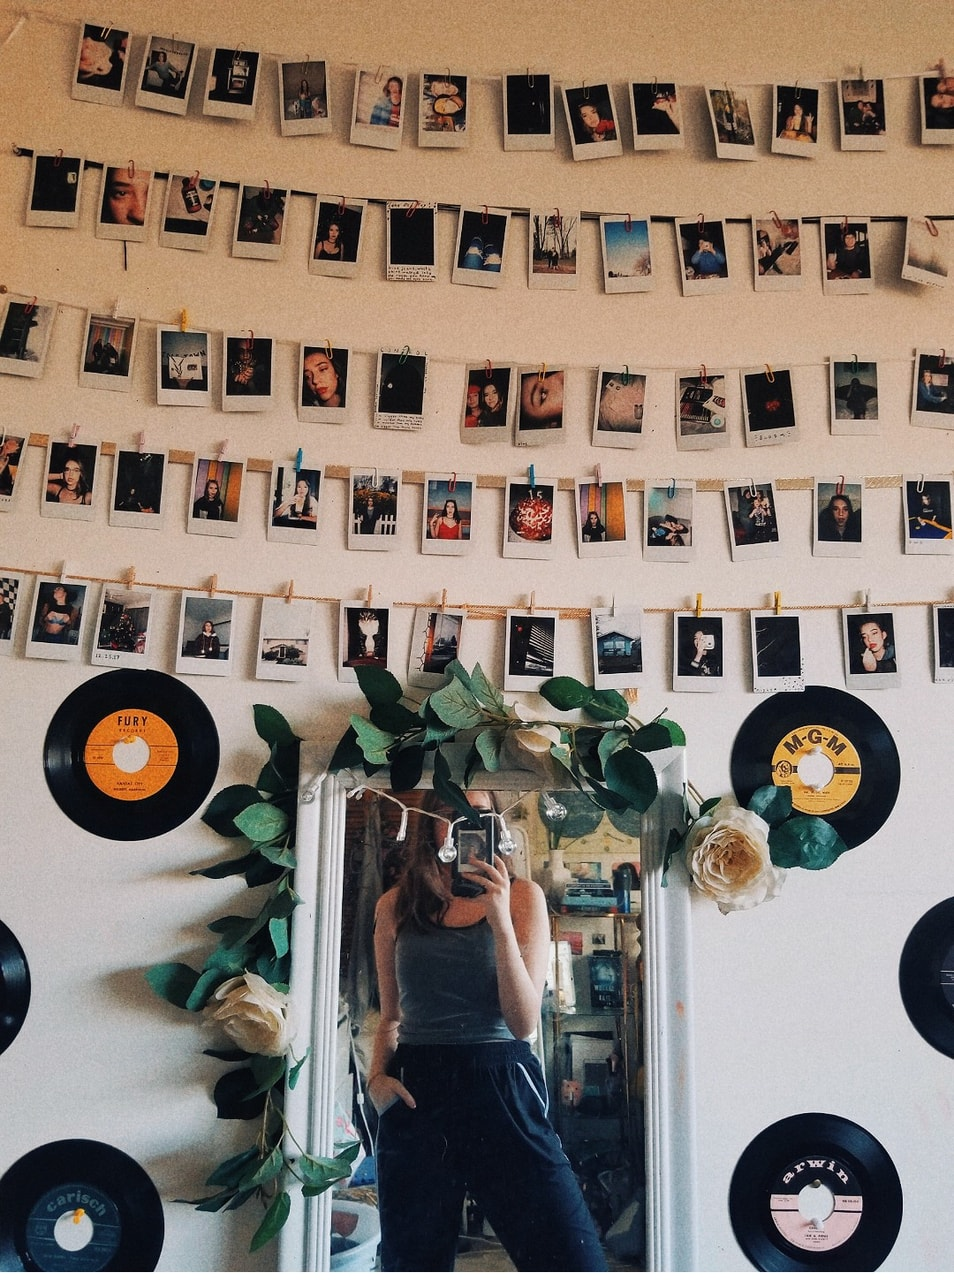 Polaroidwall Recordwall Aesthetic Room And Vinyl Image 6991830 On Favim Com